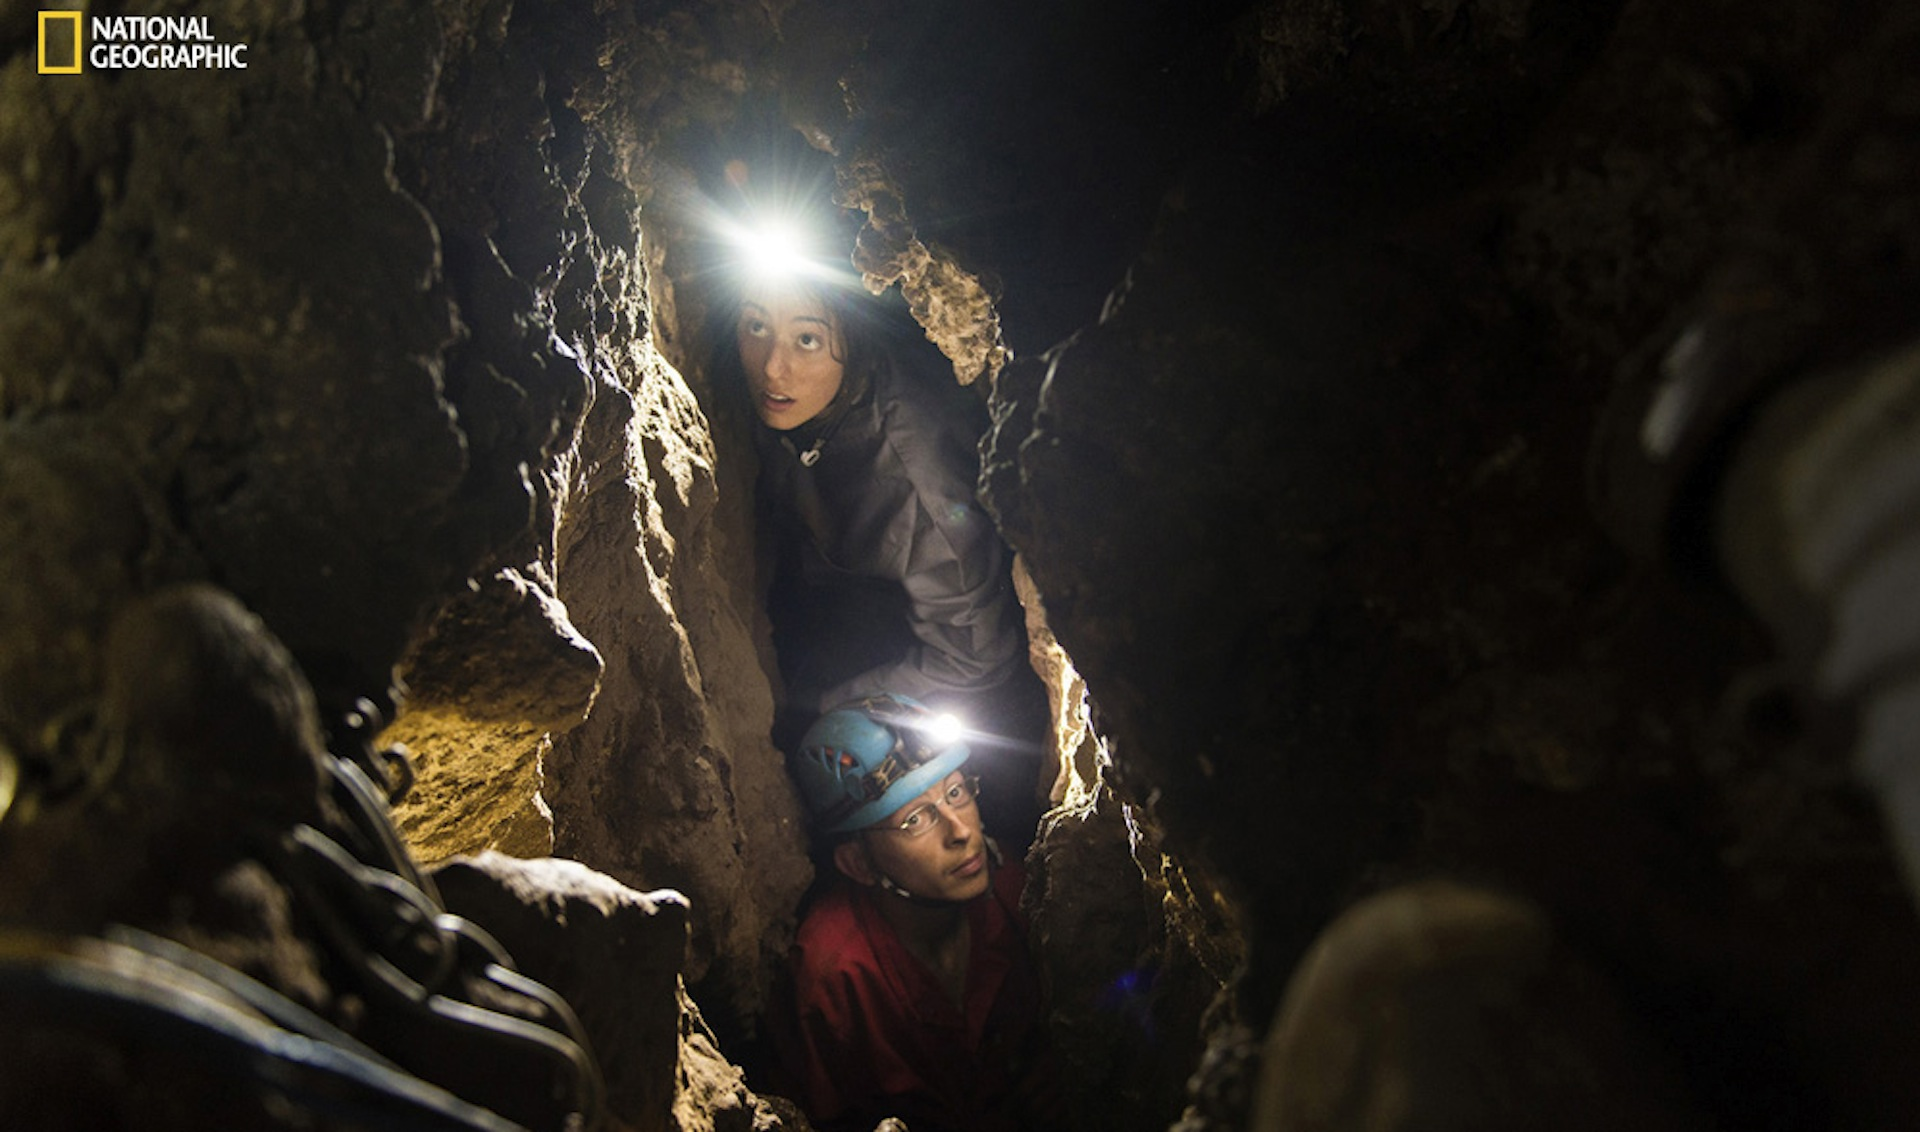 Fossils found in African cave are new species of human kin, say scientists